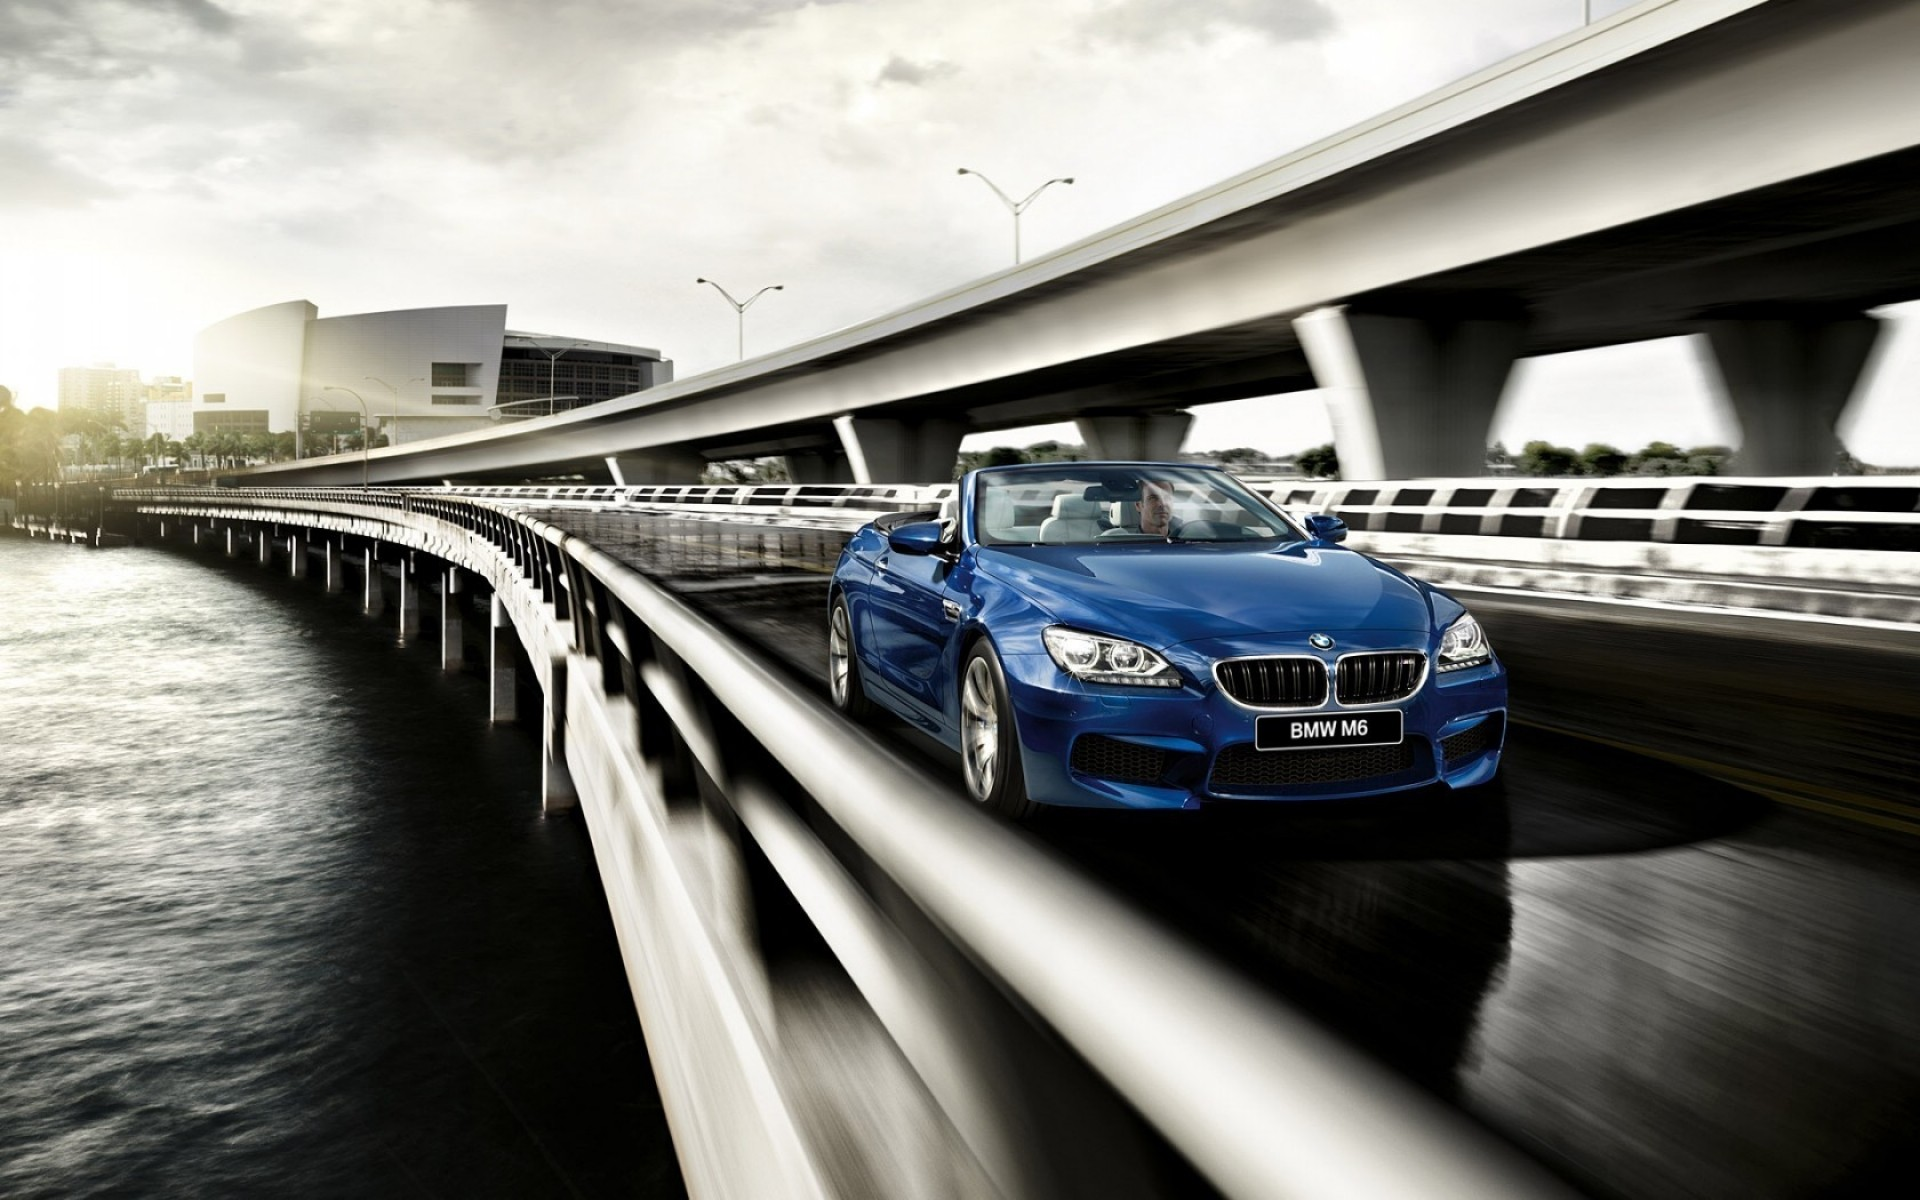 bmw transportation system blur travel bridge car street